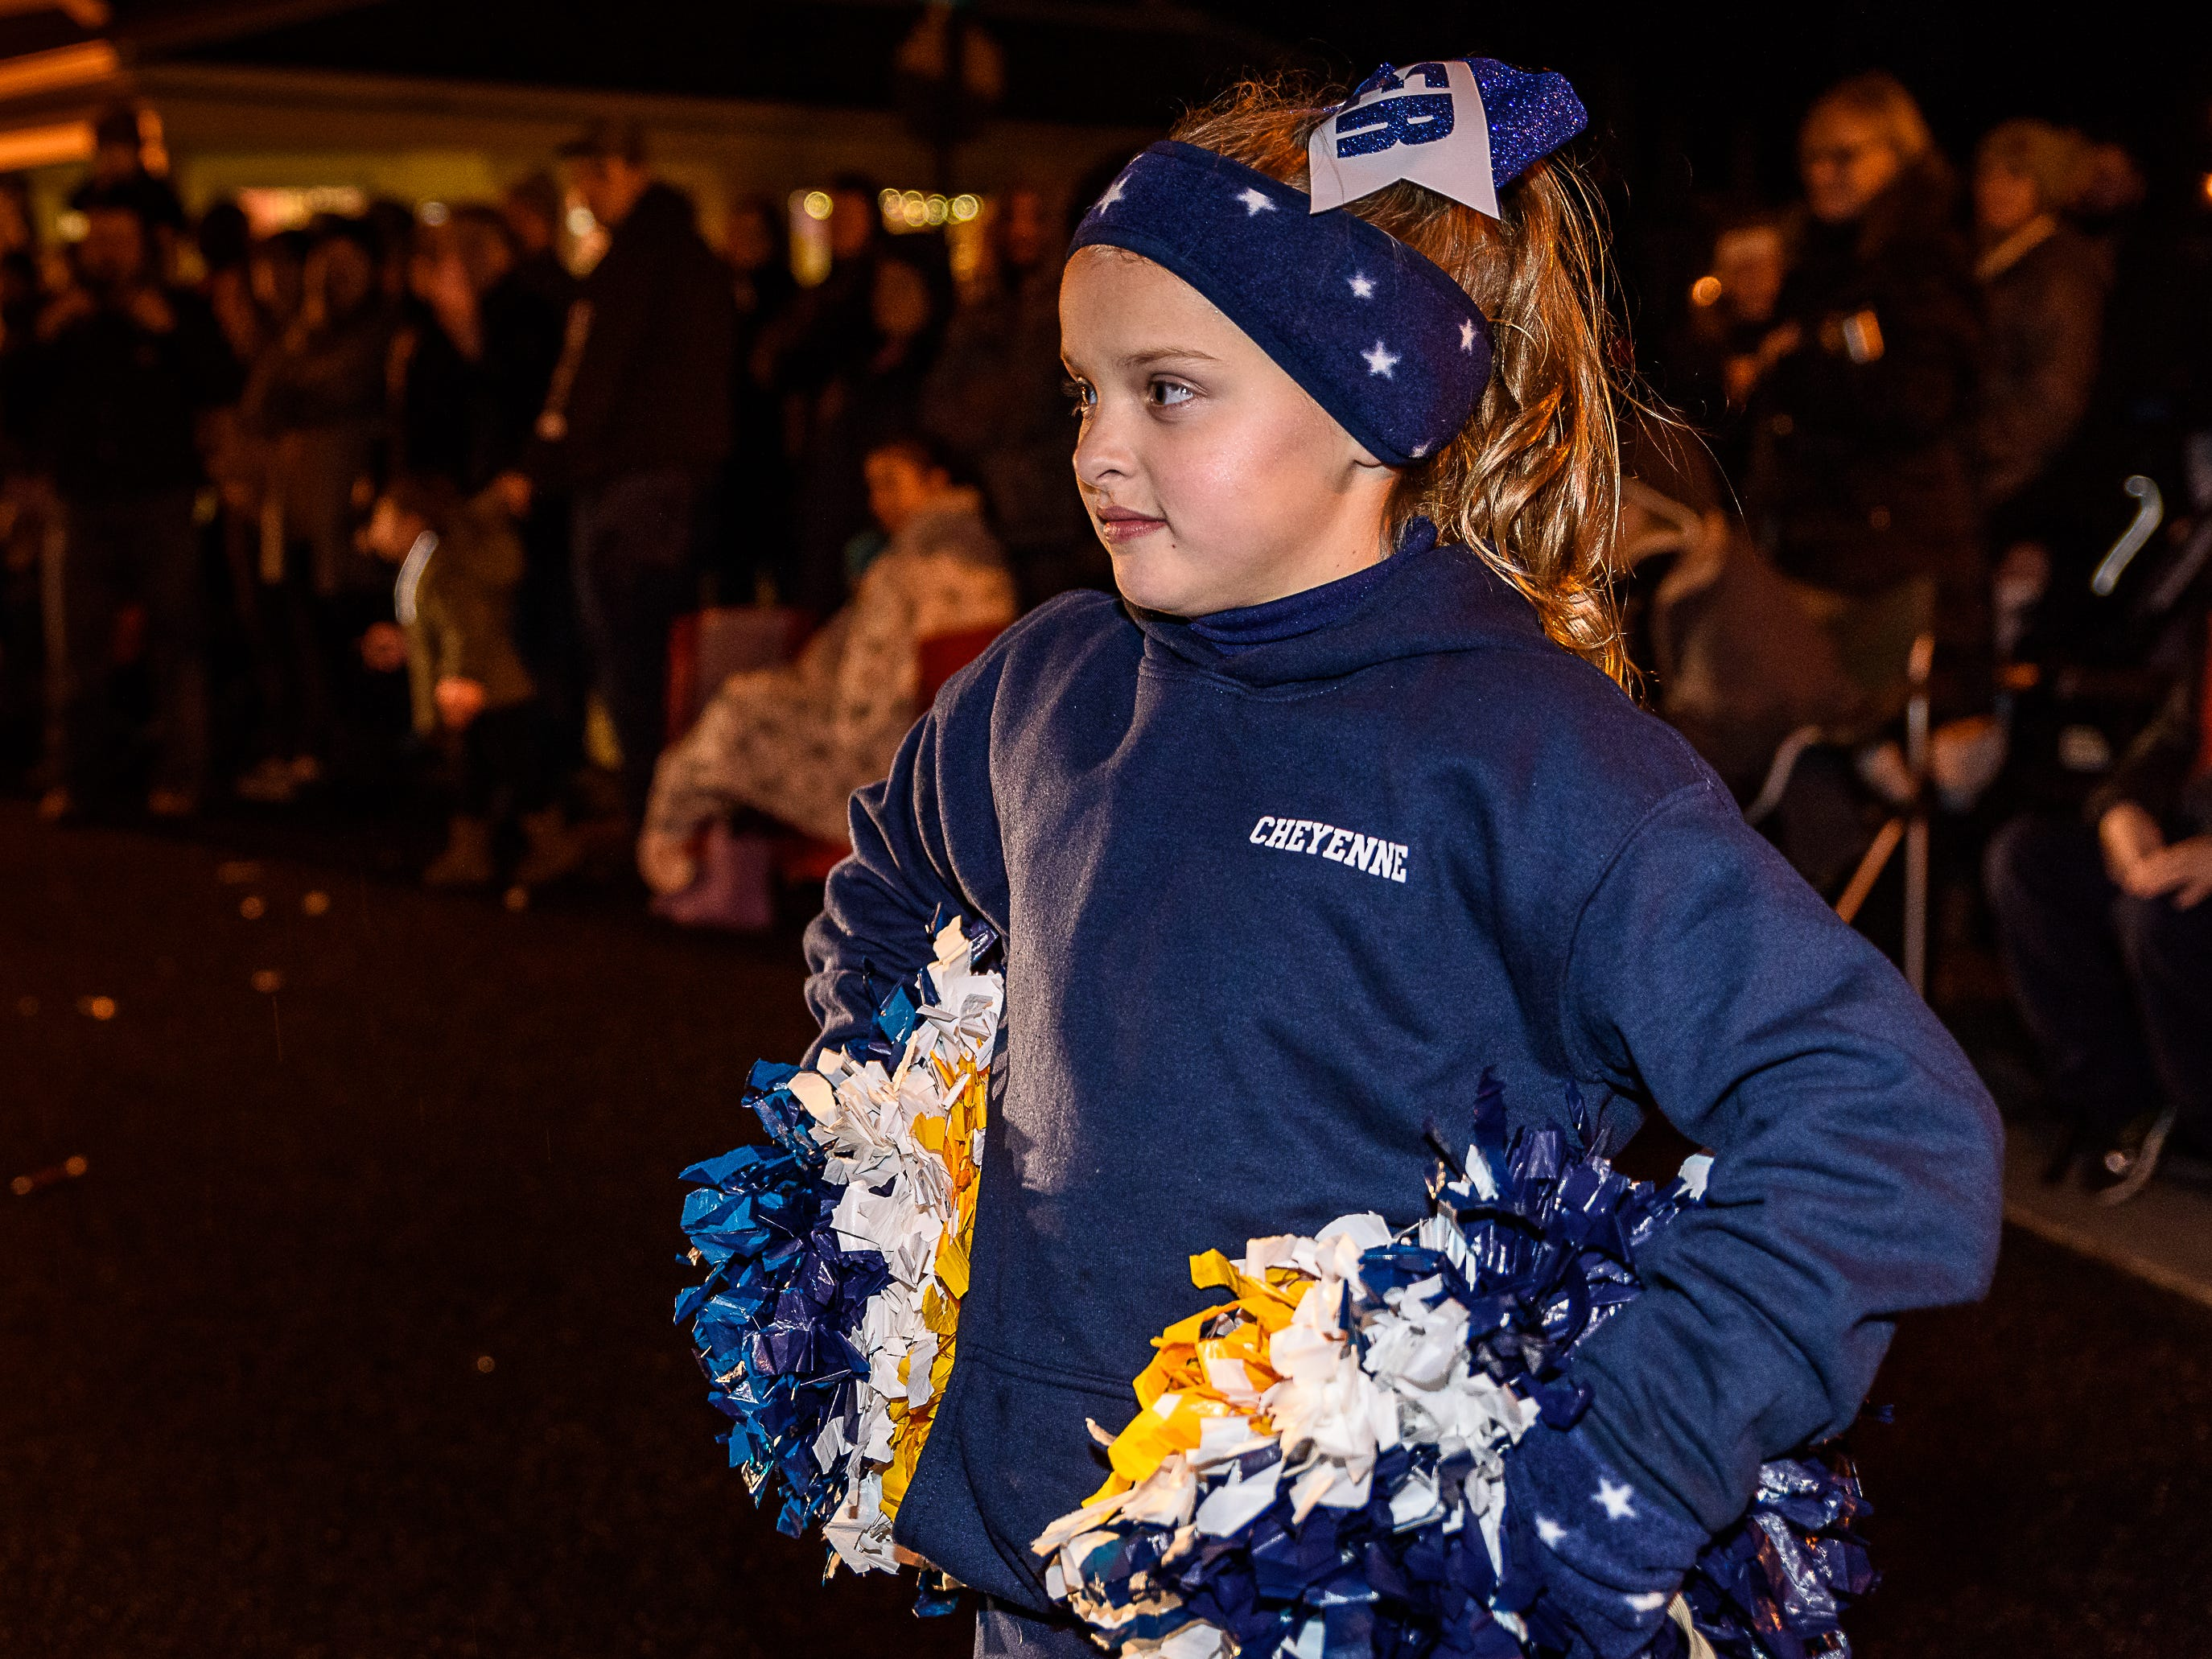 A member of the North Accomack Youth Football & Cheerleading squad gets ready to start her routine during the Chincoteague Christmas parade.